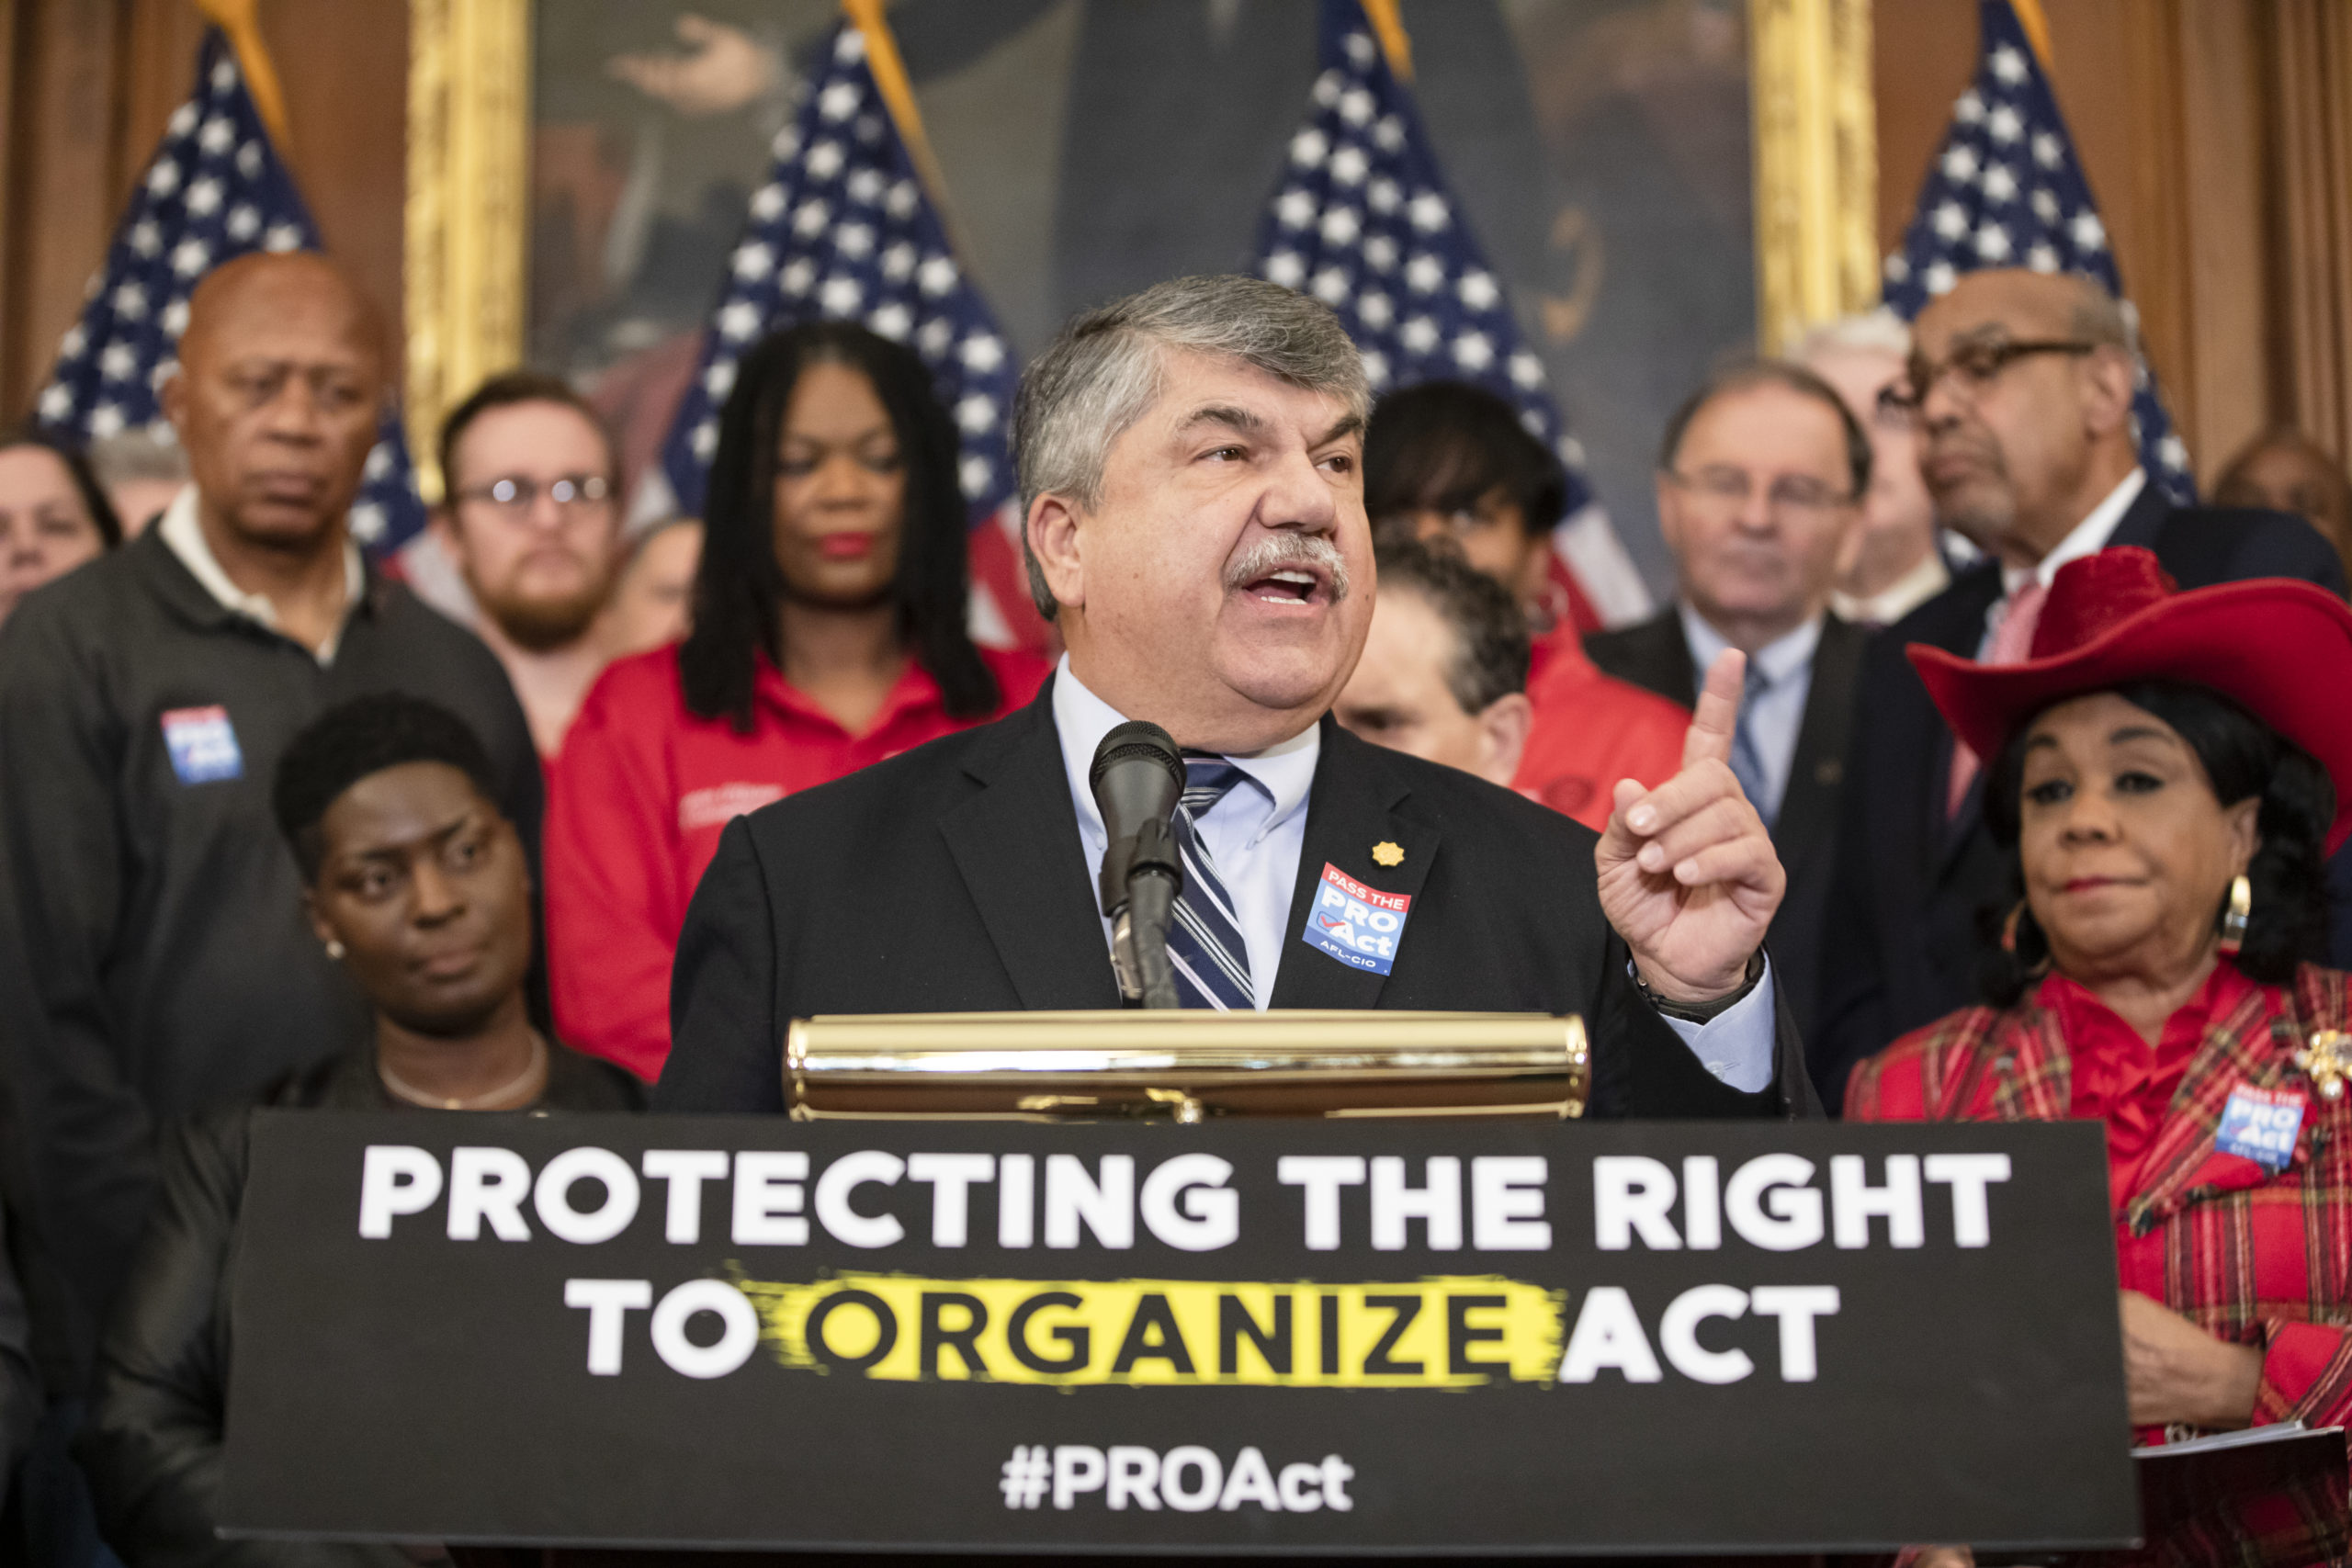 AFL-CIO President Richard Trumka speaks during a press conference advocating for the PRO Act in 2020. (Samuel Corum/Getty Images)